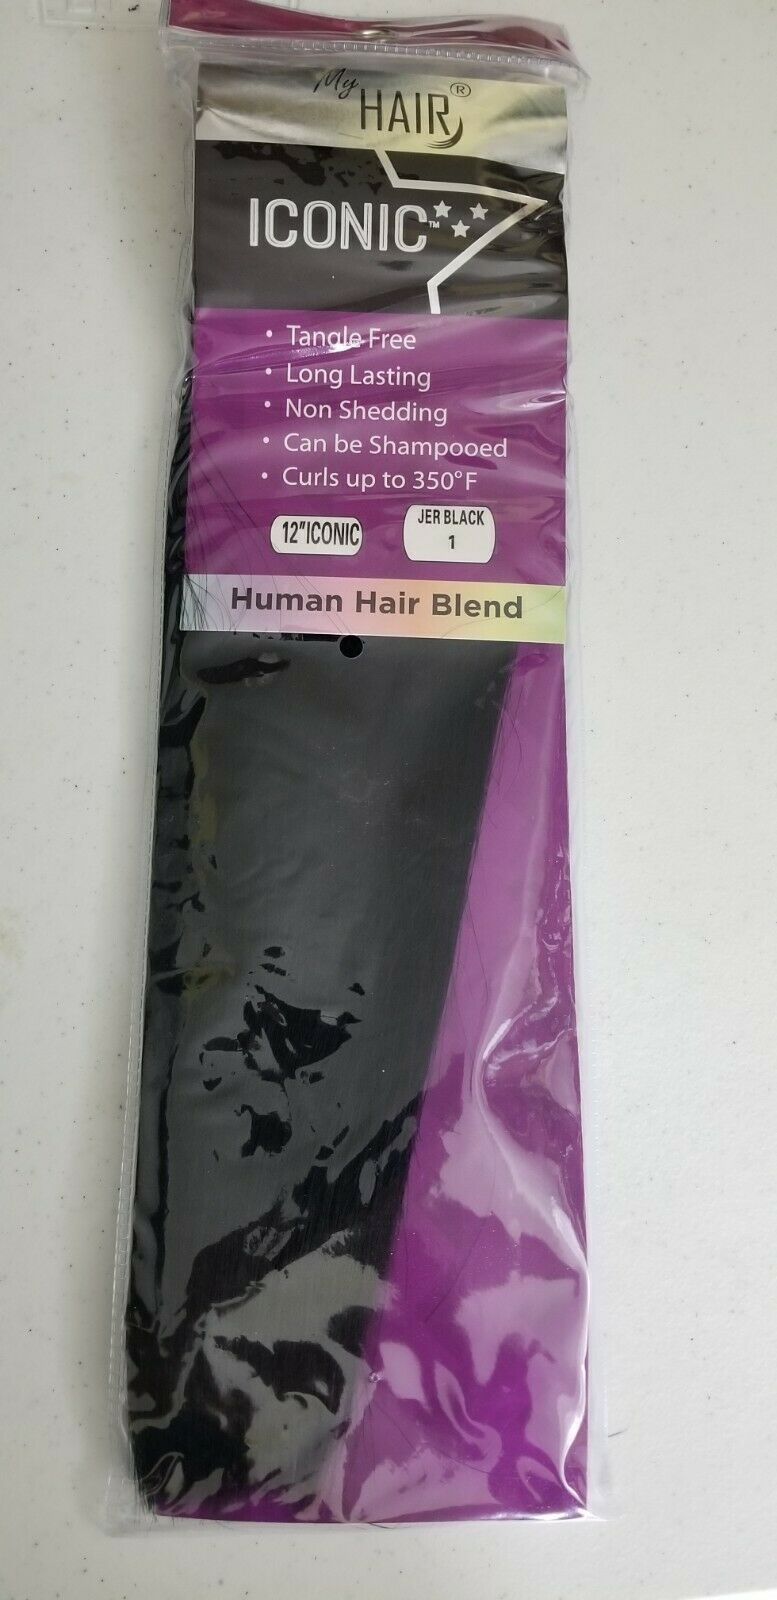 "Primary image for Lot of 4, My Hair Extensions, Iconic- Human Hair Blend. 12"" Iconic - Jer Black 1"